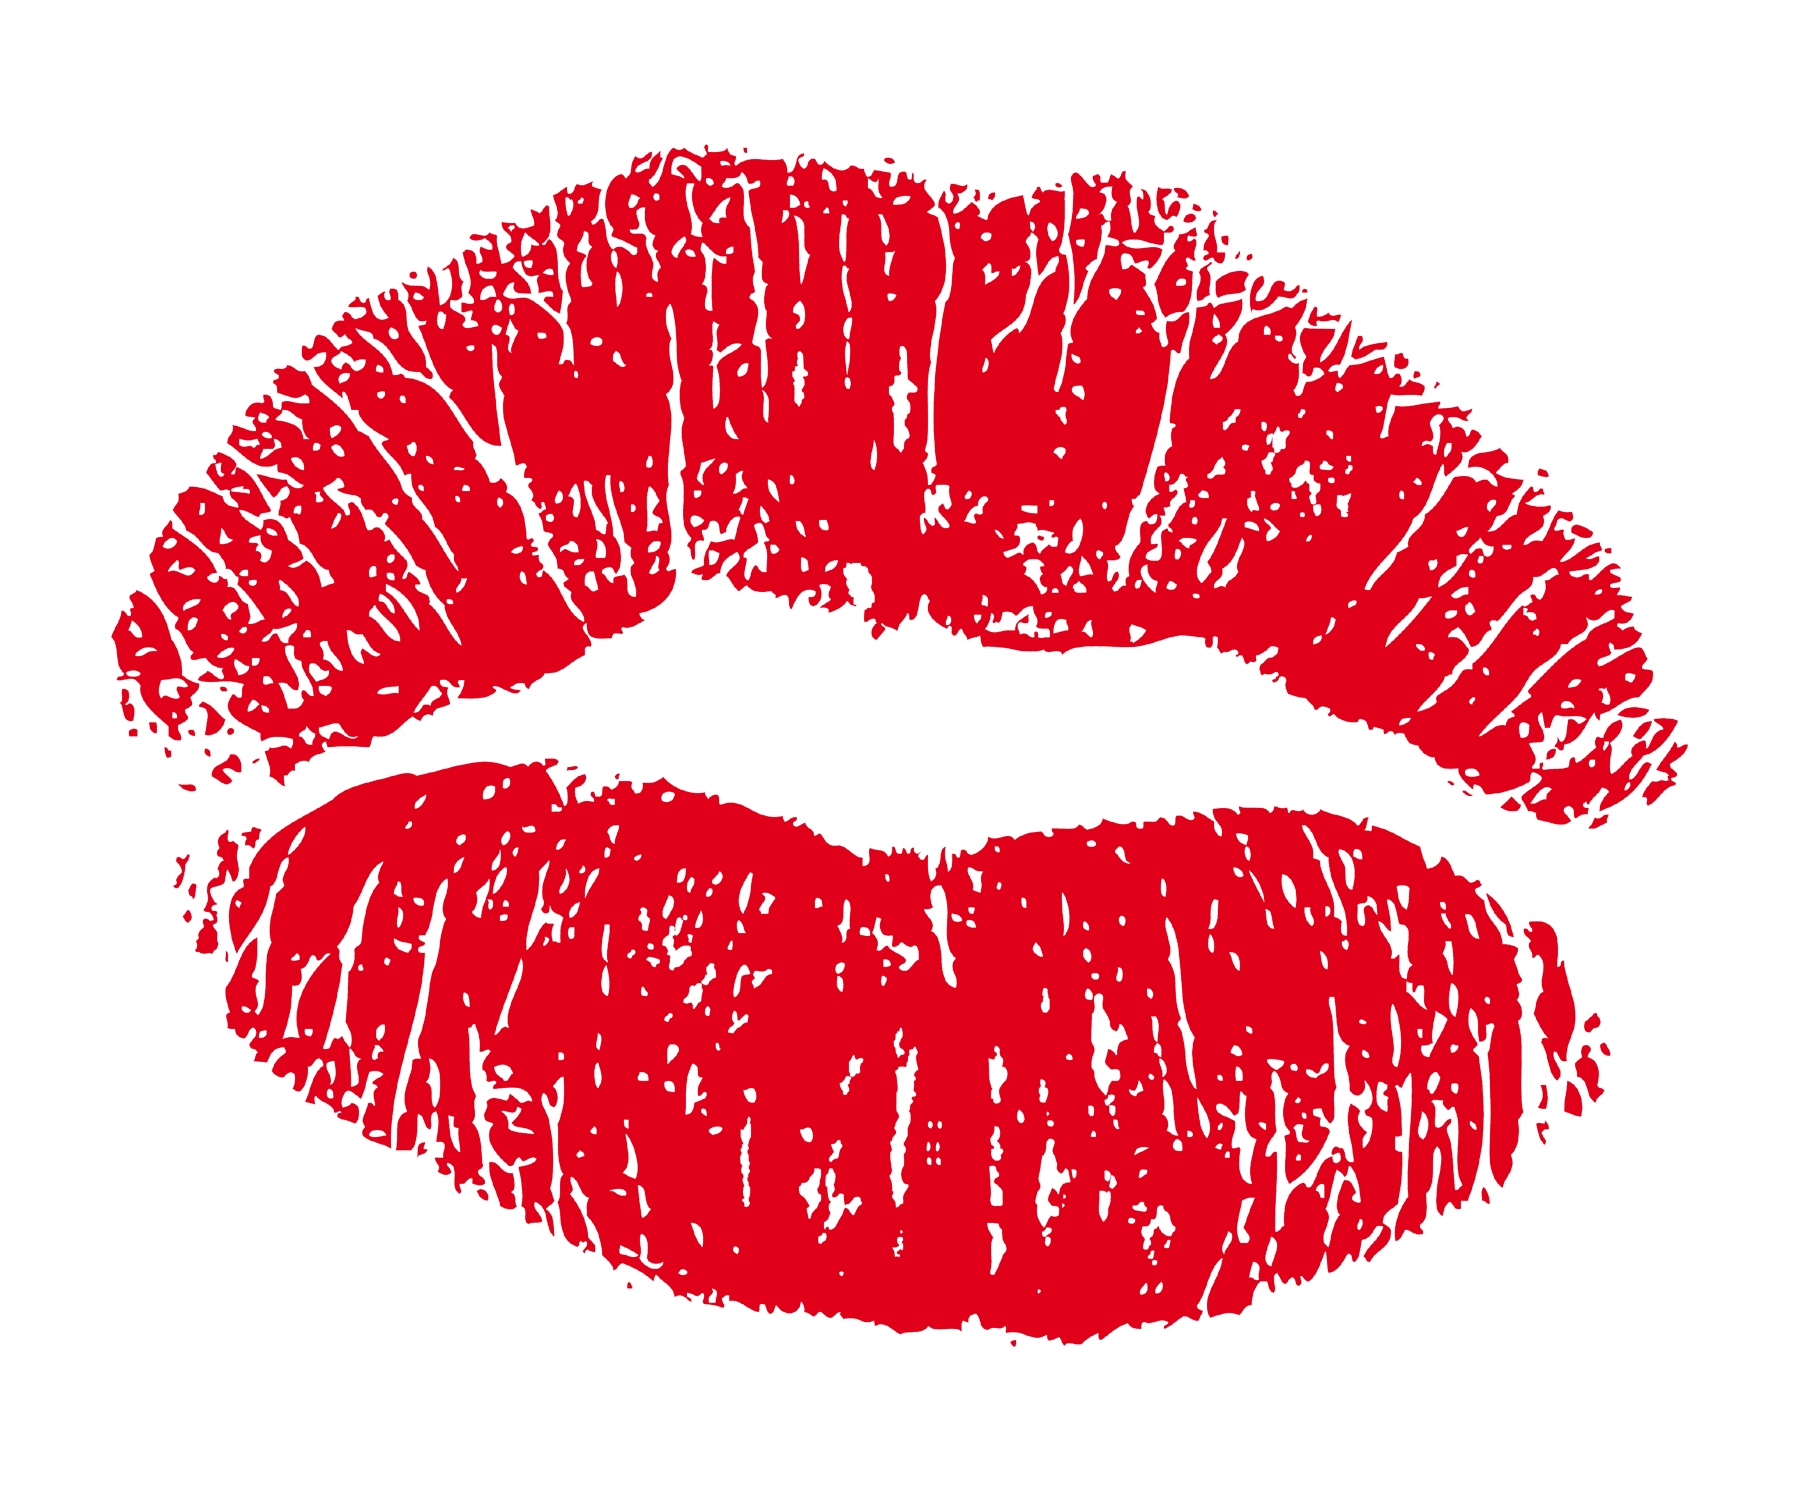 Kiss Transparent Png Kiss Mark Lips Red And Pink Kiss Png Images Free Transparent Png Logos